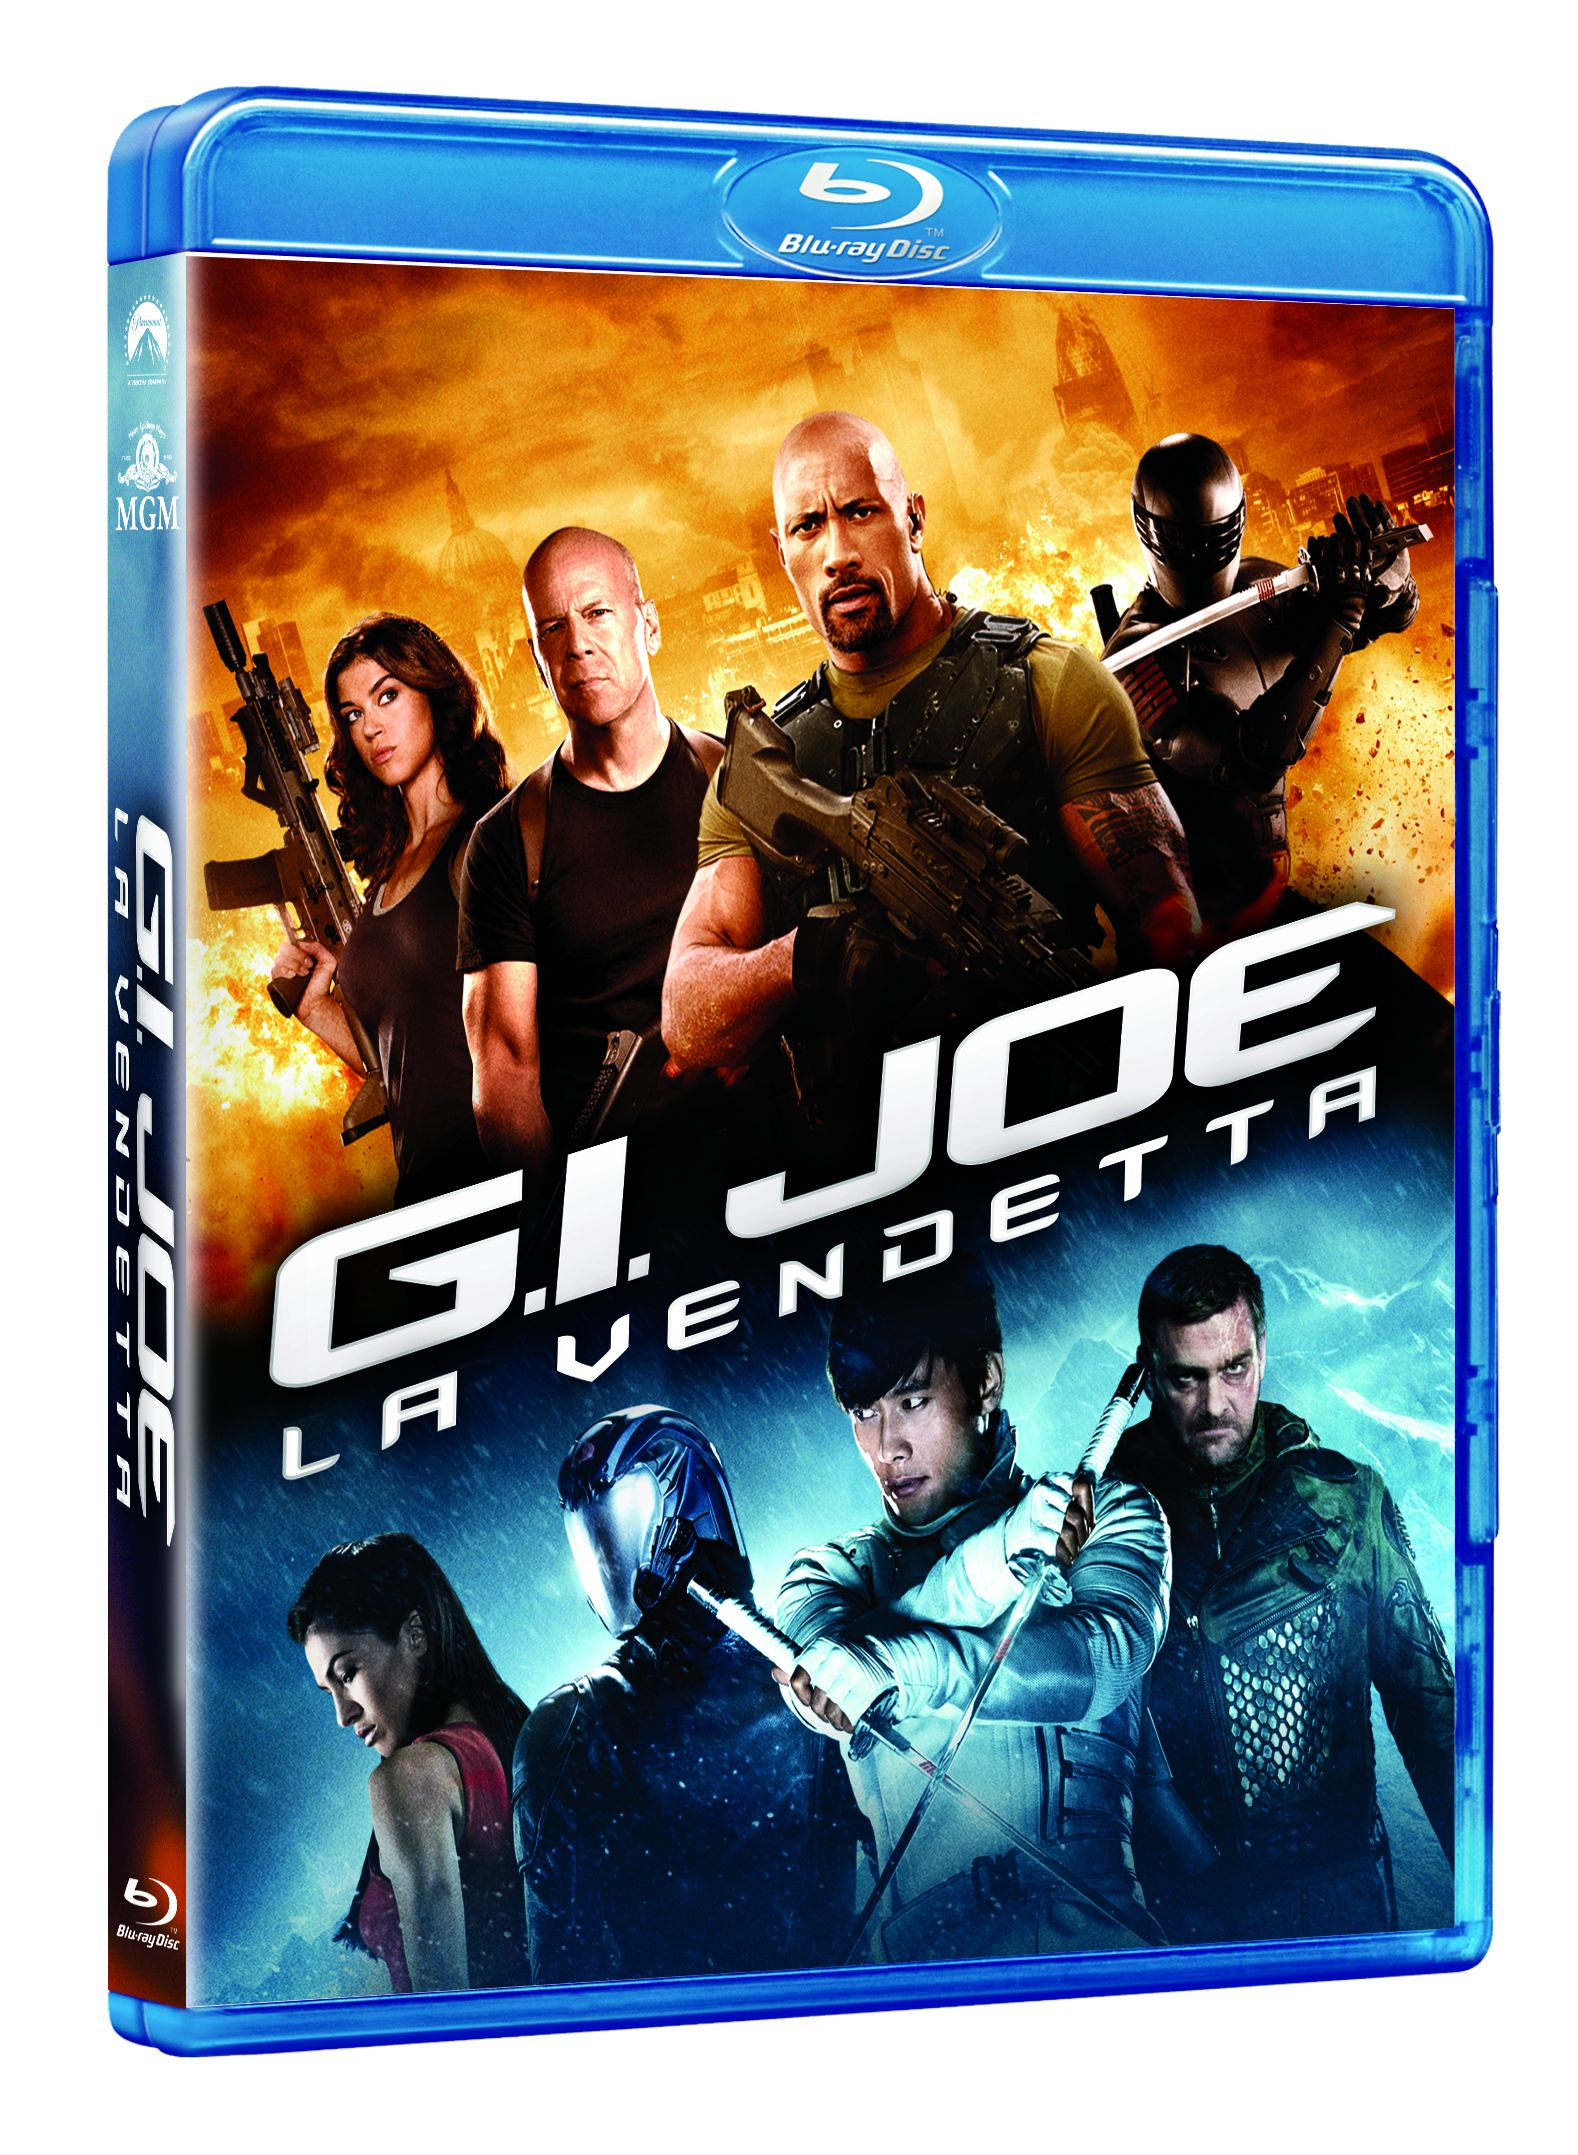 g.i. joe la vendetta blu-ray